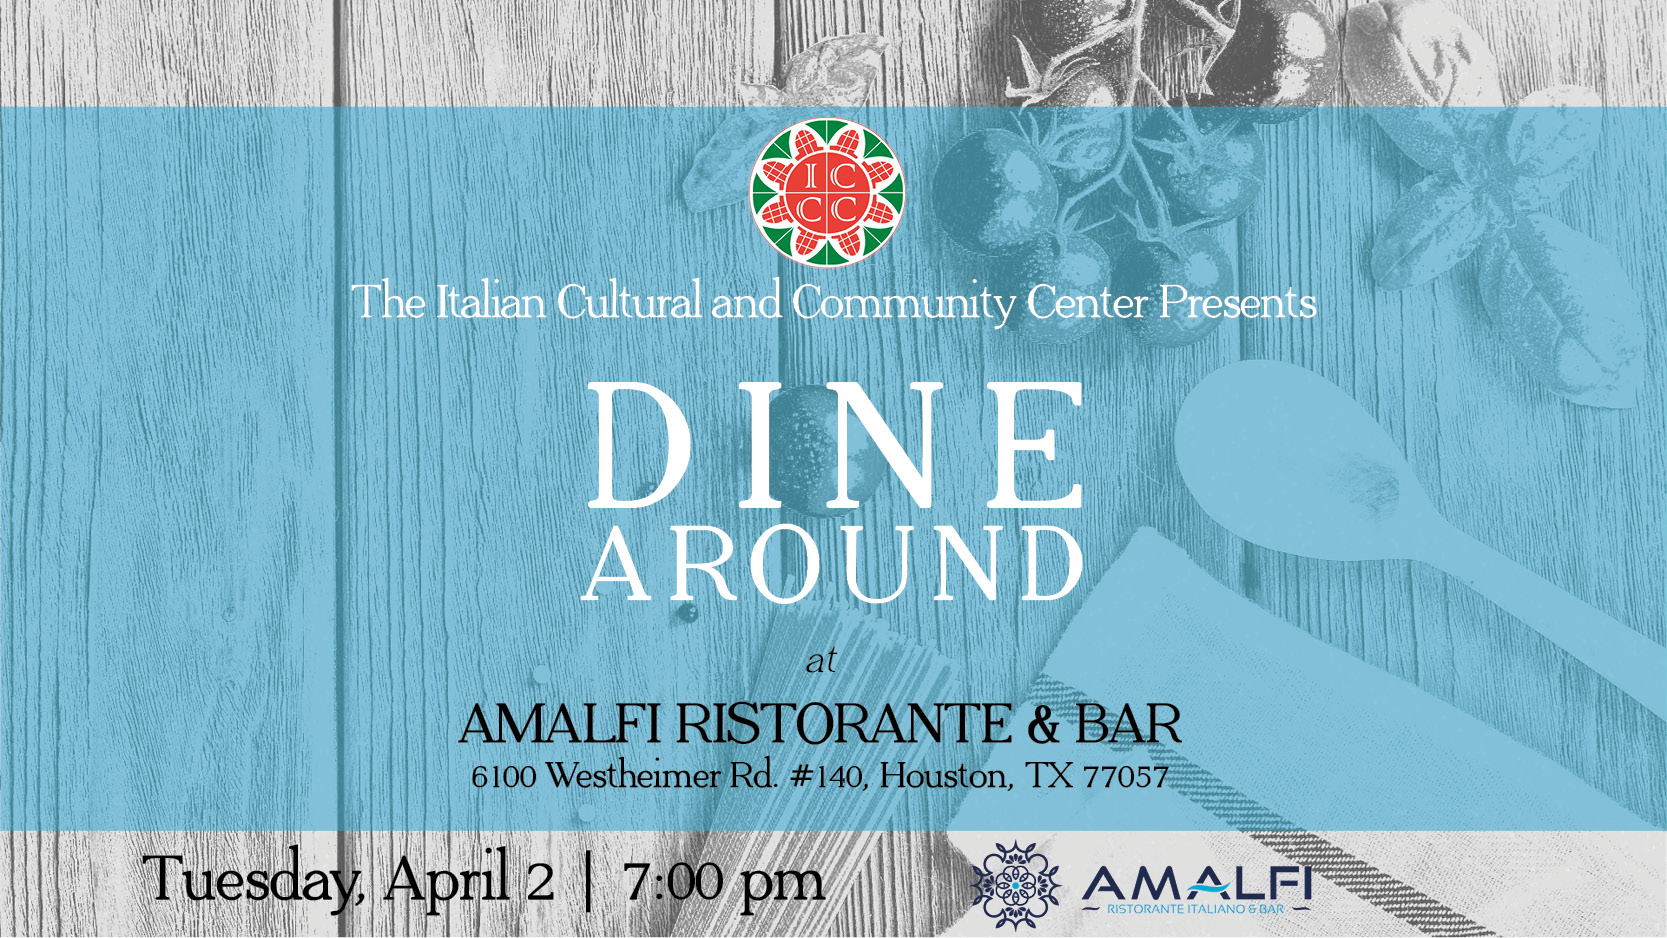 Cucina Di Pesce Prix Fixe Iccc Dine Around At Amalfi Ristorante Bar Presented By Italian